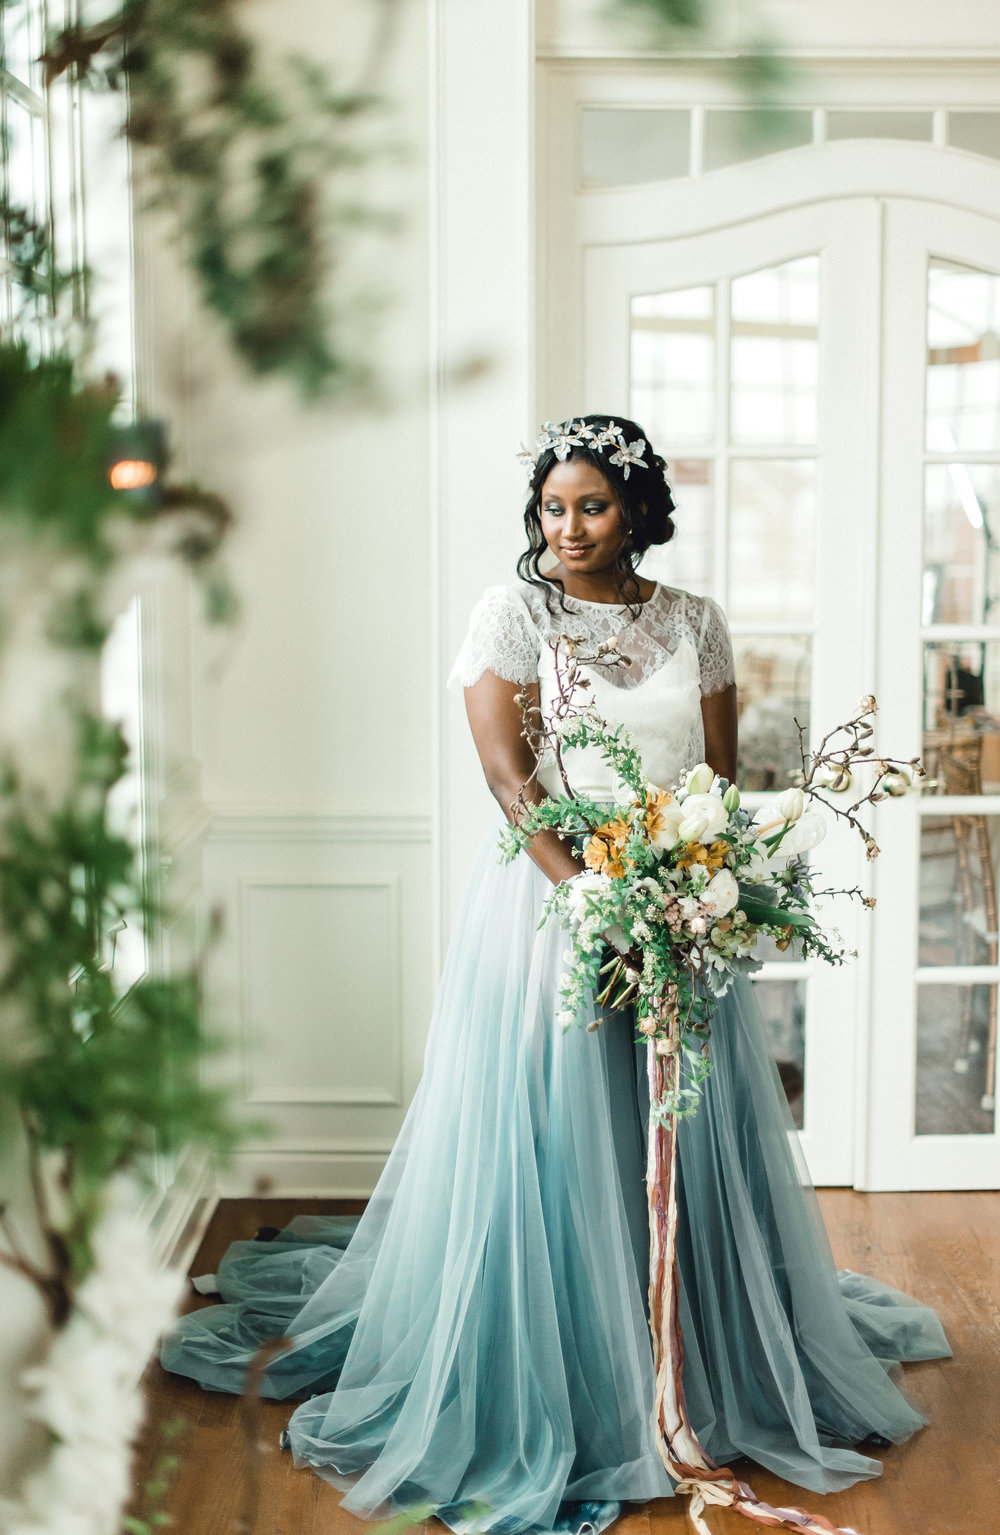 Bride poses with organic wedding bouquet at wedding venue for Pablo Neruda enchanting garden styled shoot planned by Exhale Events. Get inspired at exhale-events.com!